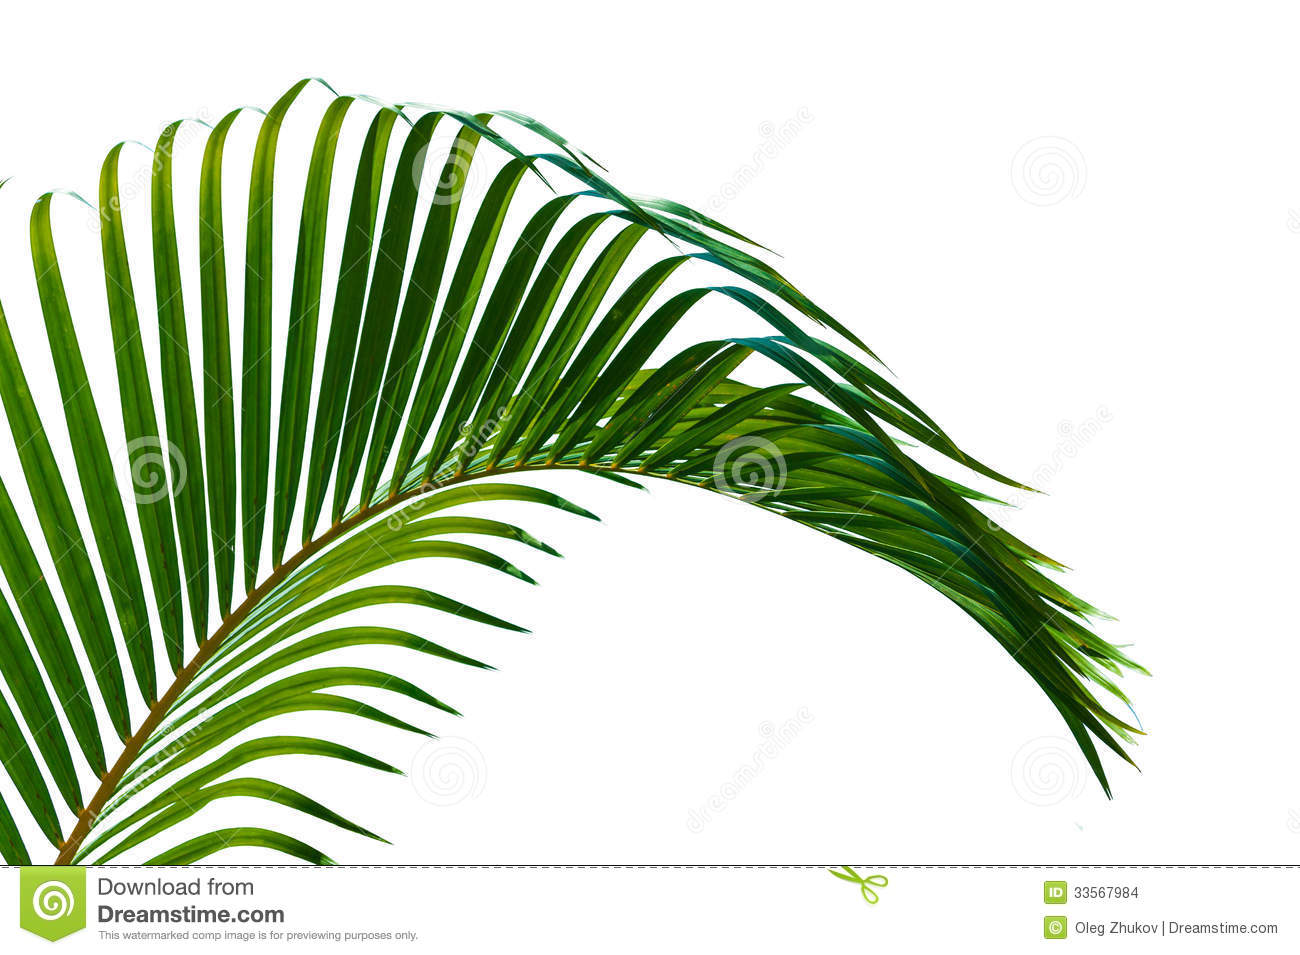 Palm leaves close up isolated on white background.